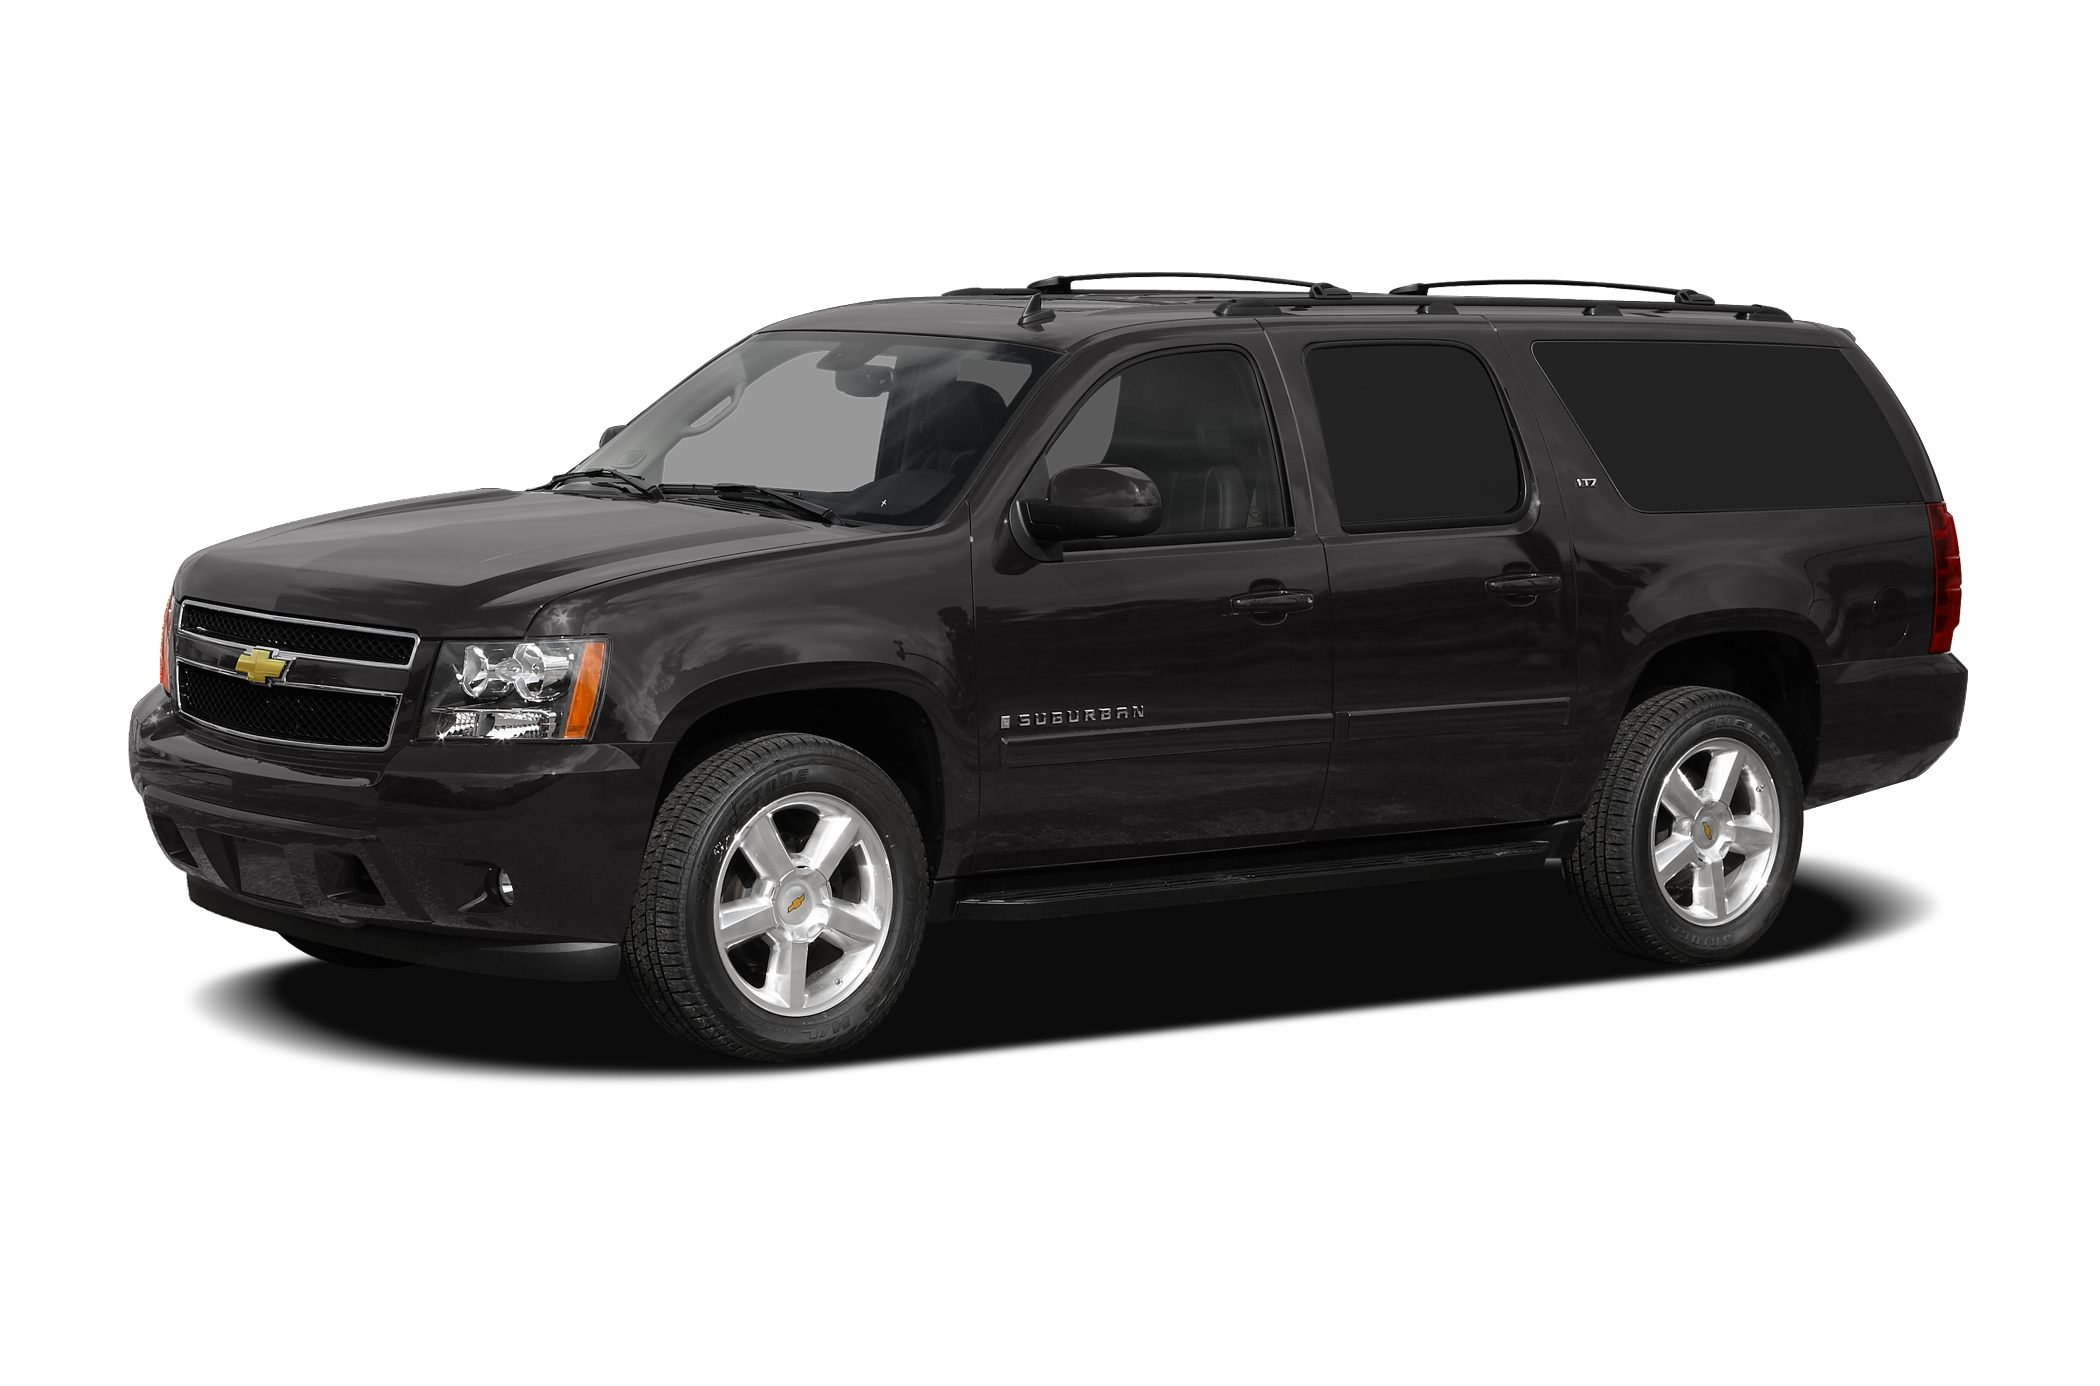 2008 Chevrolet Suburban 1500 LS SUV for sale in Crestwood for $20,995 with 112,502 miles